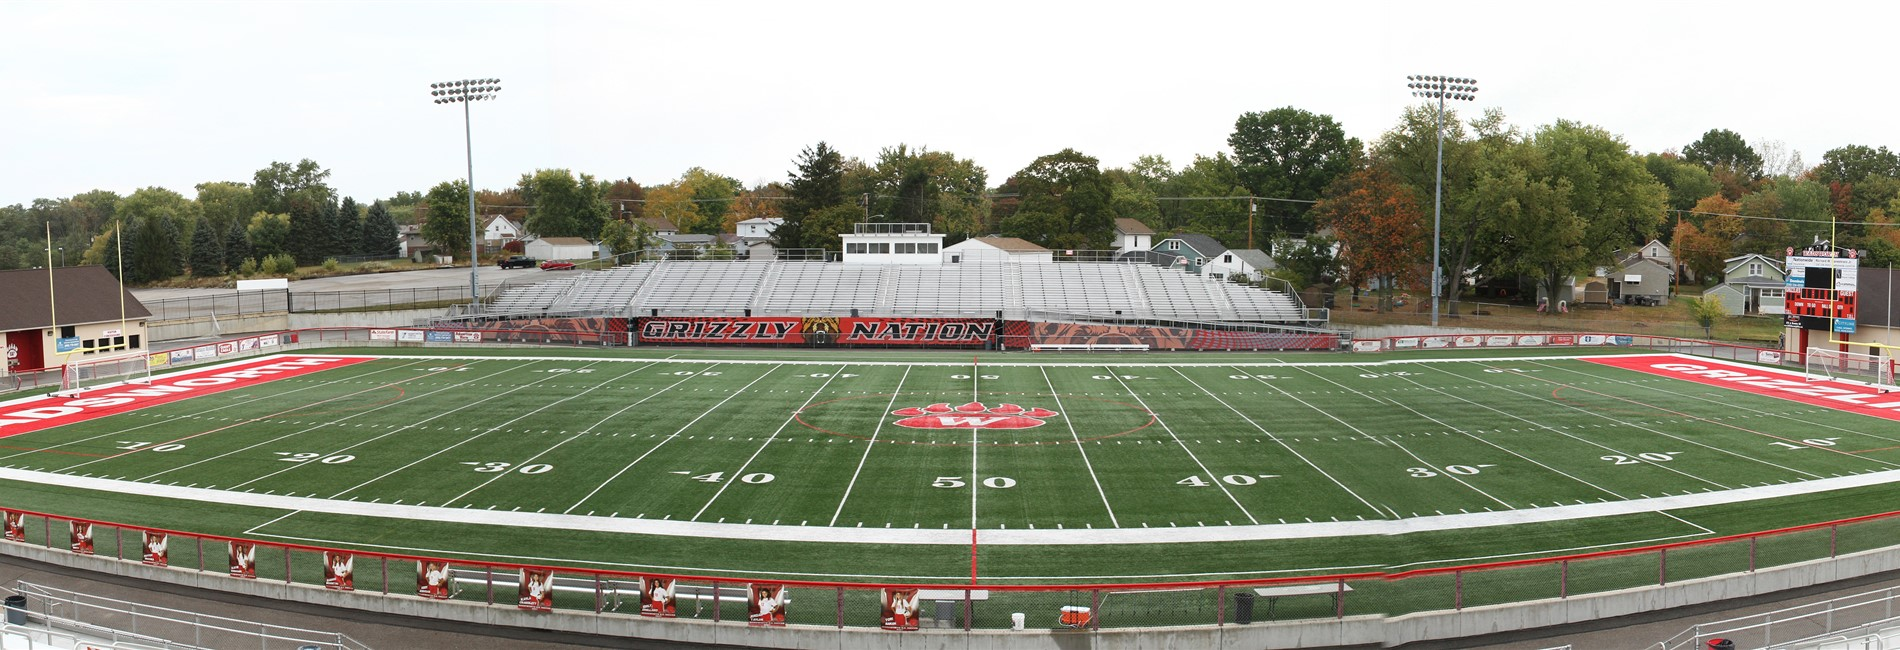 Art Wright Stadium